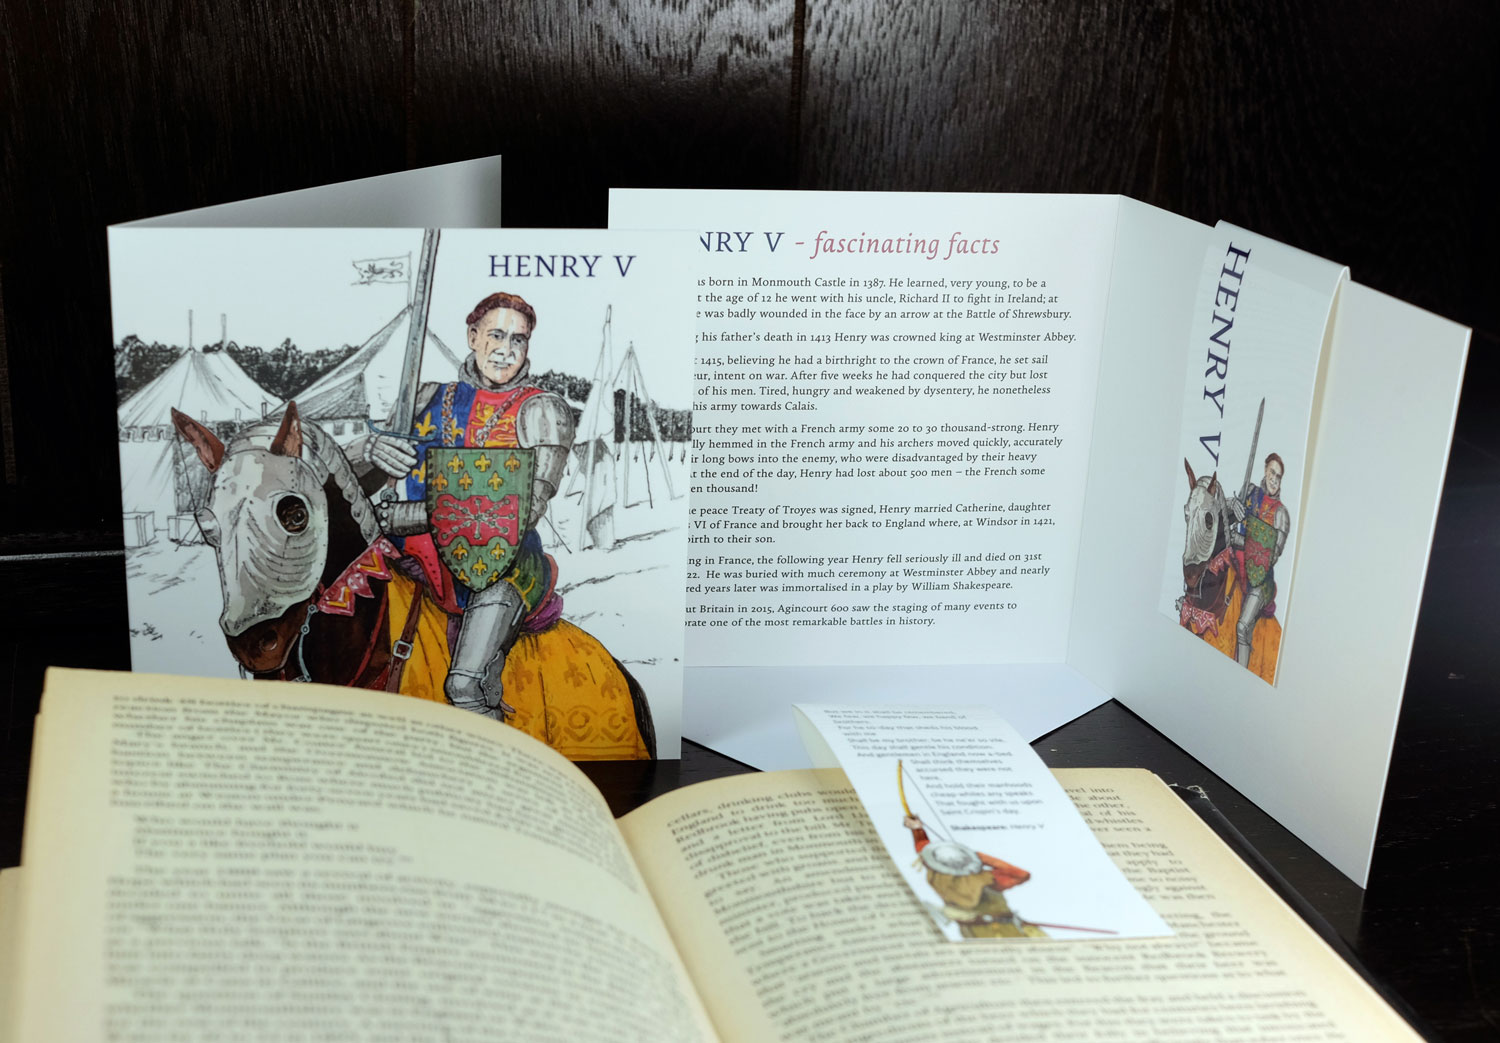 The first in our series of Historical figures - Henry V who was born in Monmouth Castle.  This year celebrates 600 years since the battle of Agincourt.  Events are being held up and down the Country (including Monmouth) to celebrate.